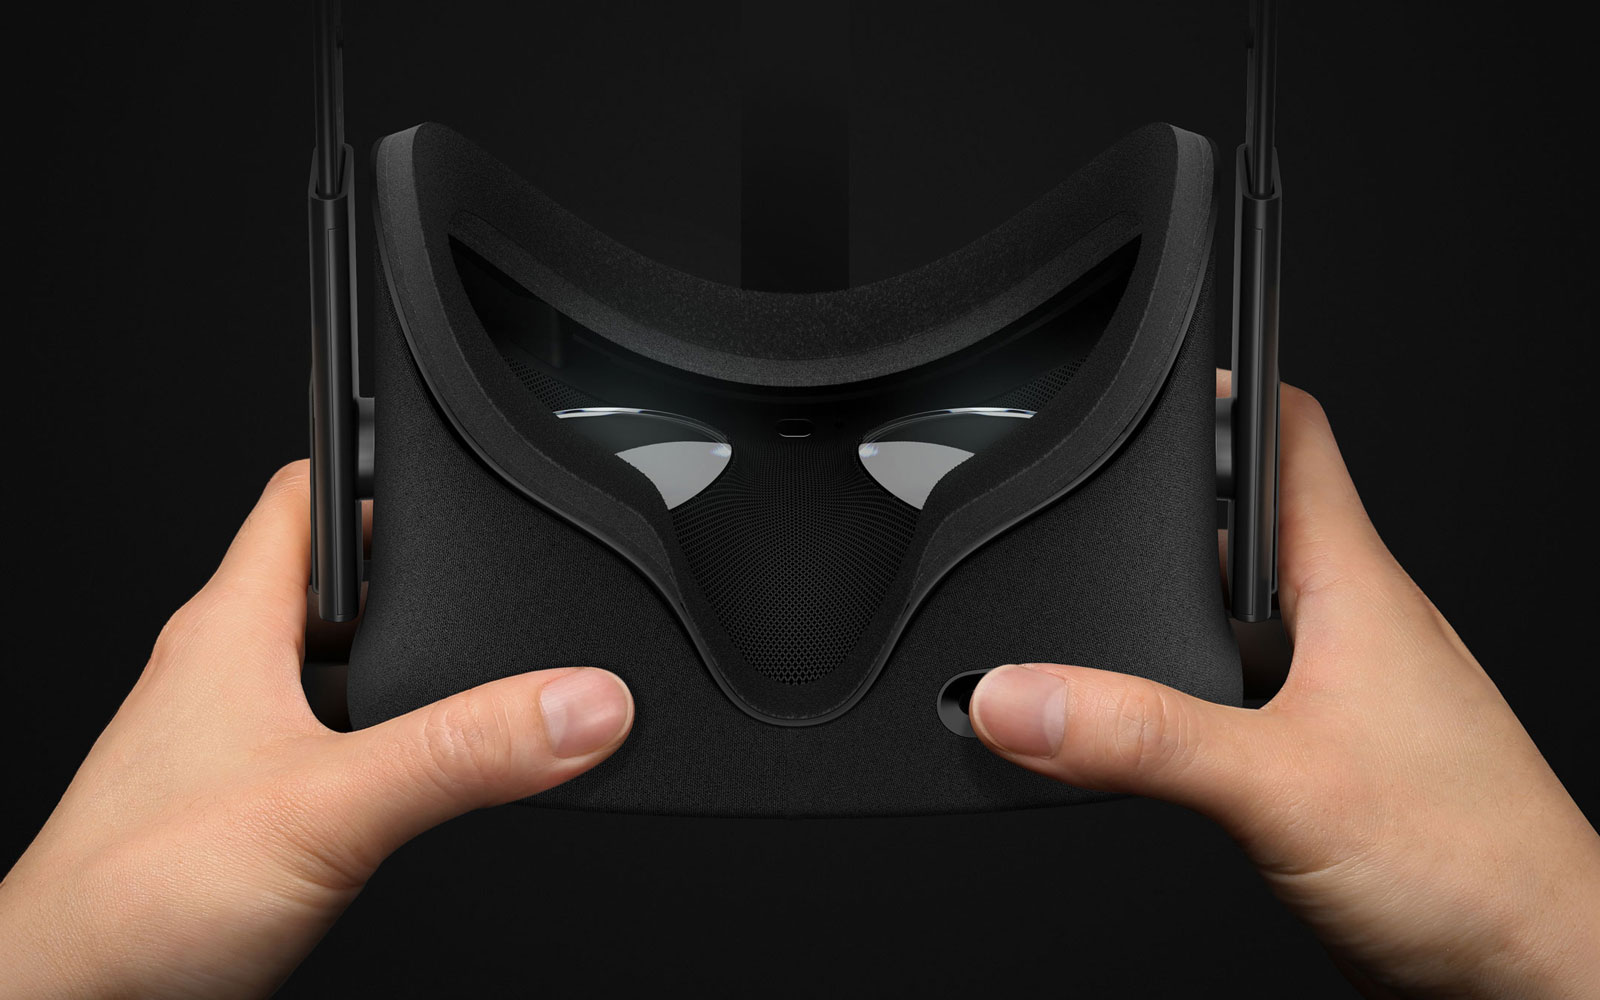 Oculus Rift Pre-Orders Now Available in Europe and Canada